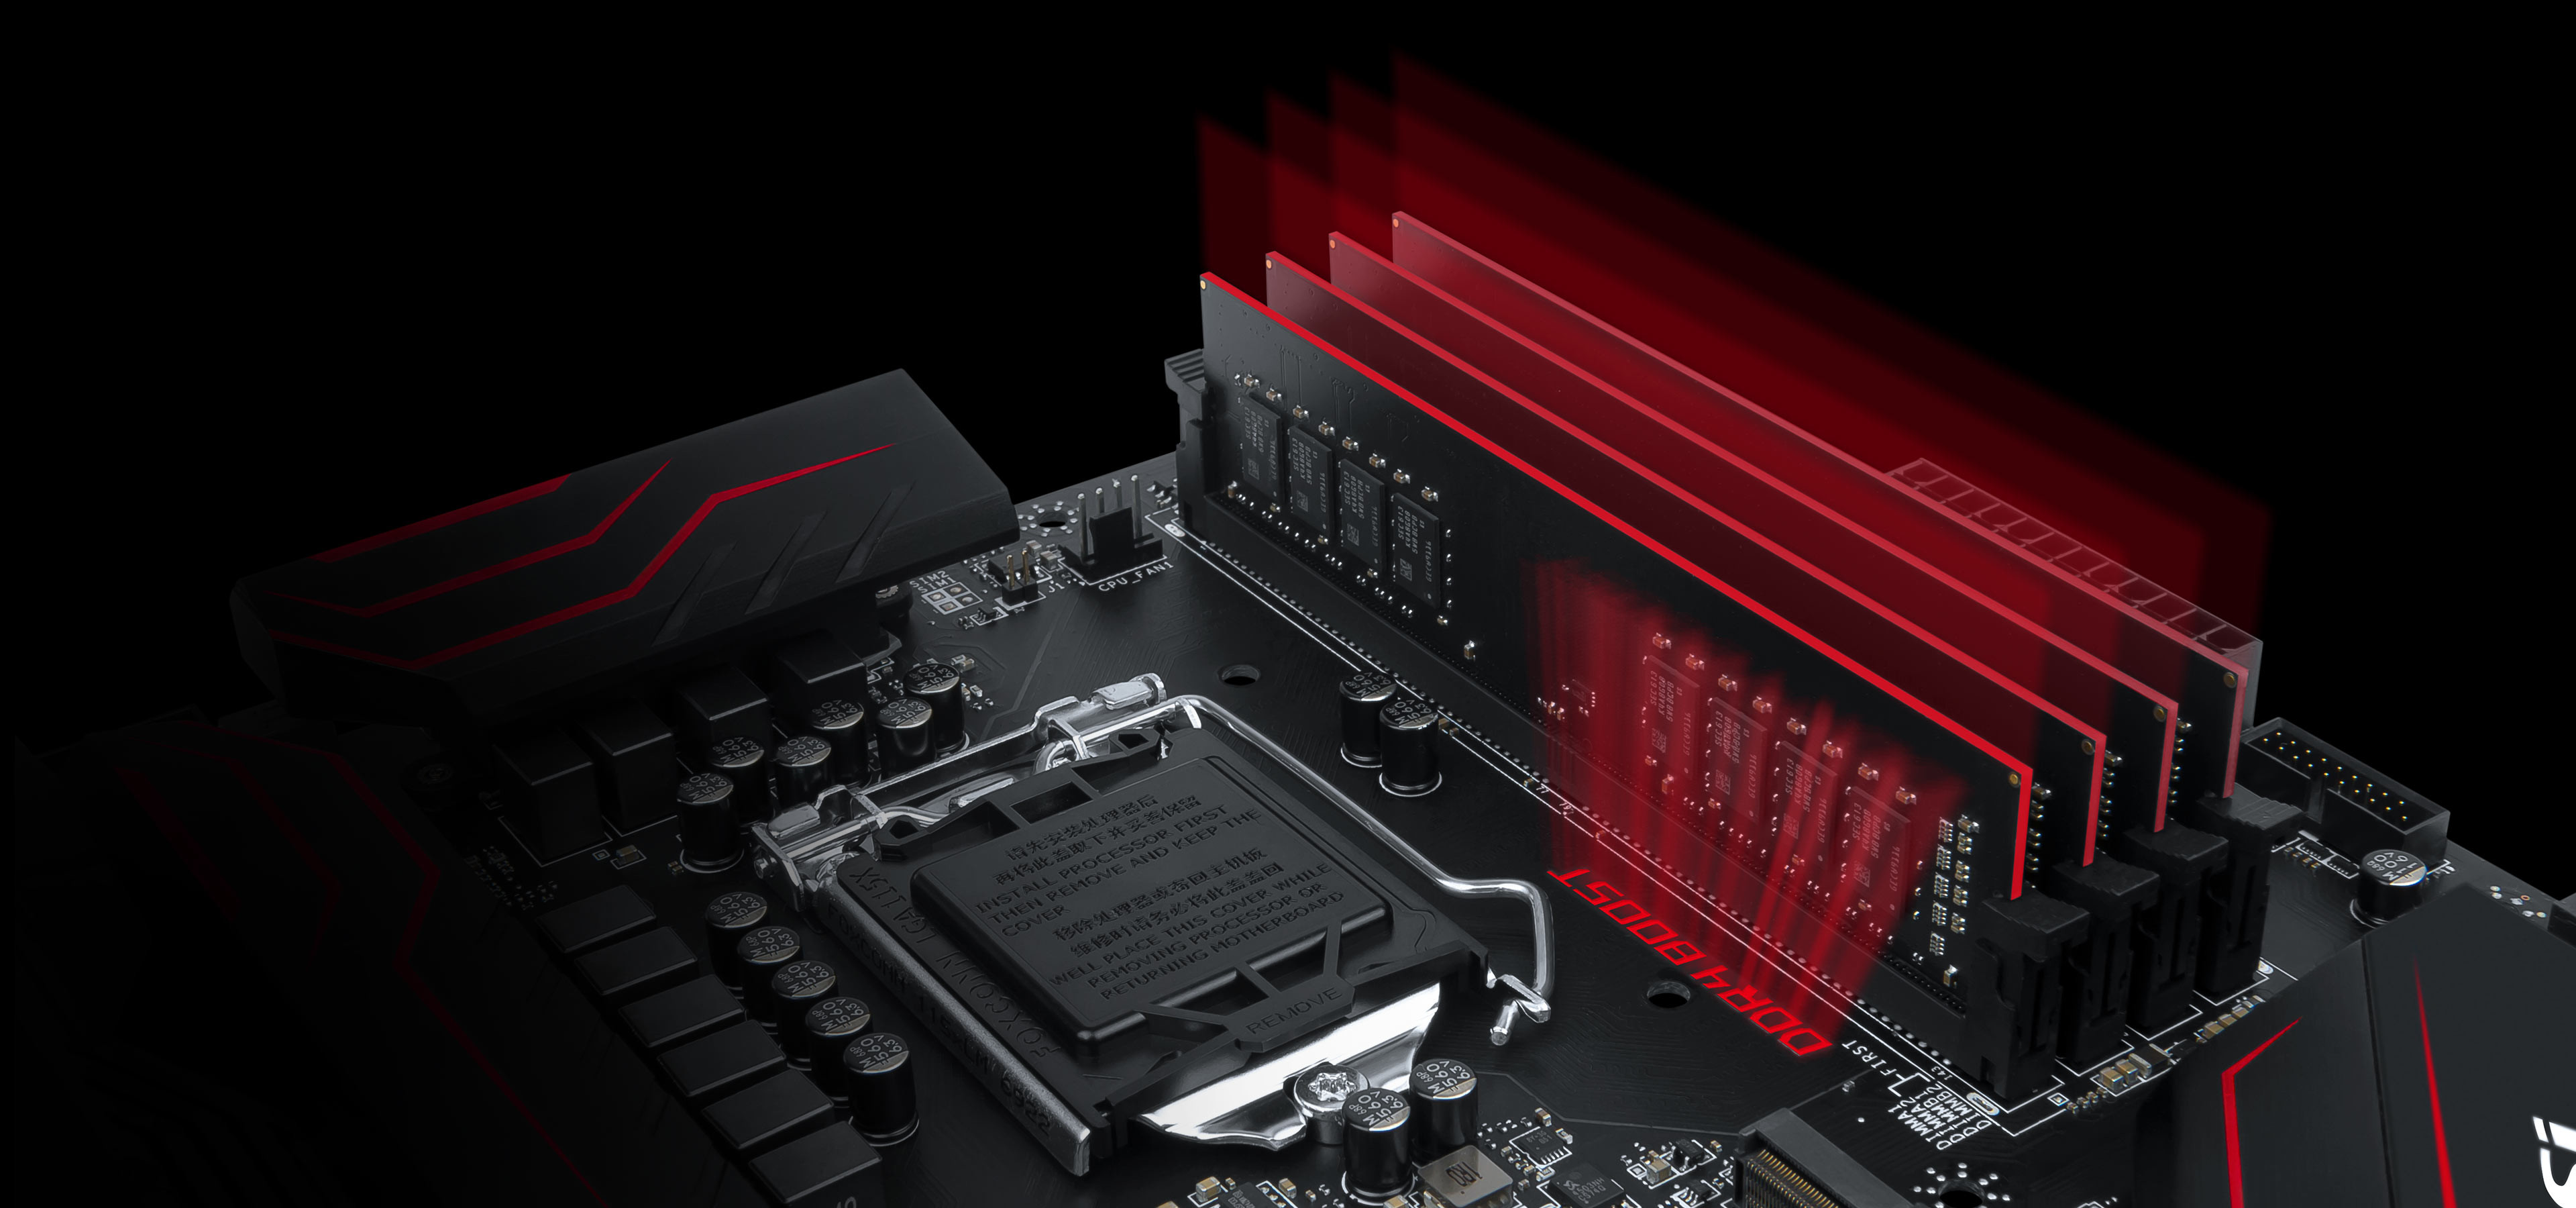 3840x1800 MSI motherboards are crammed with features to fuel your gaming rig's memory  with more speed, higher overclockability and increased stability.